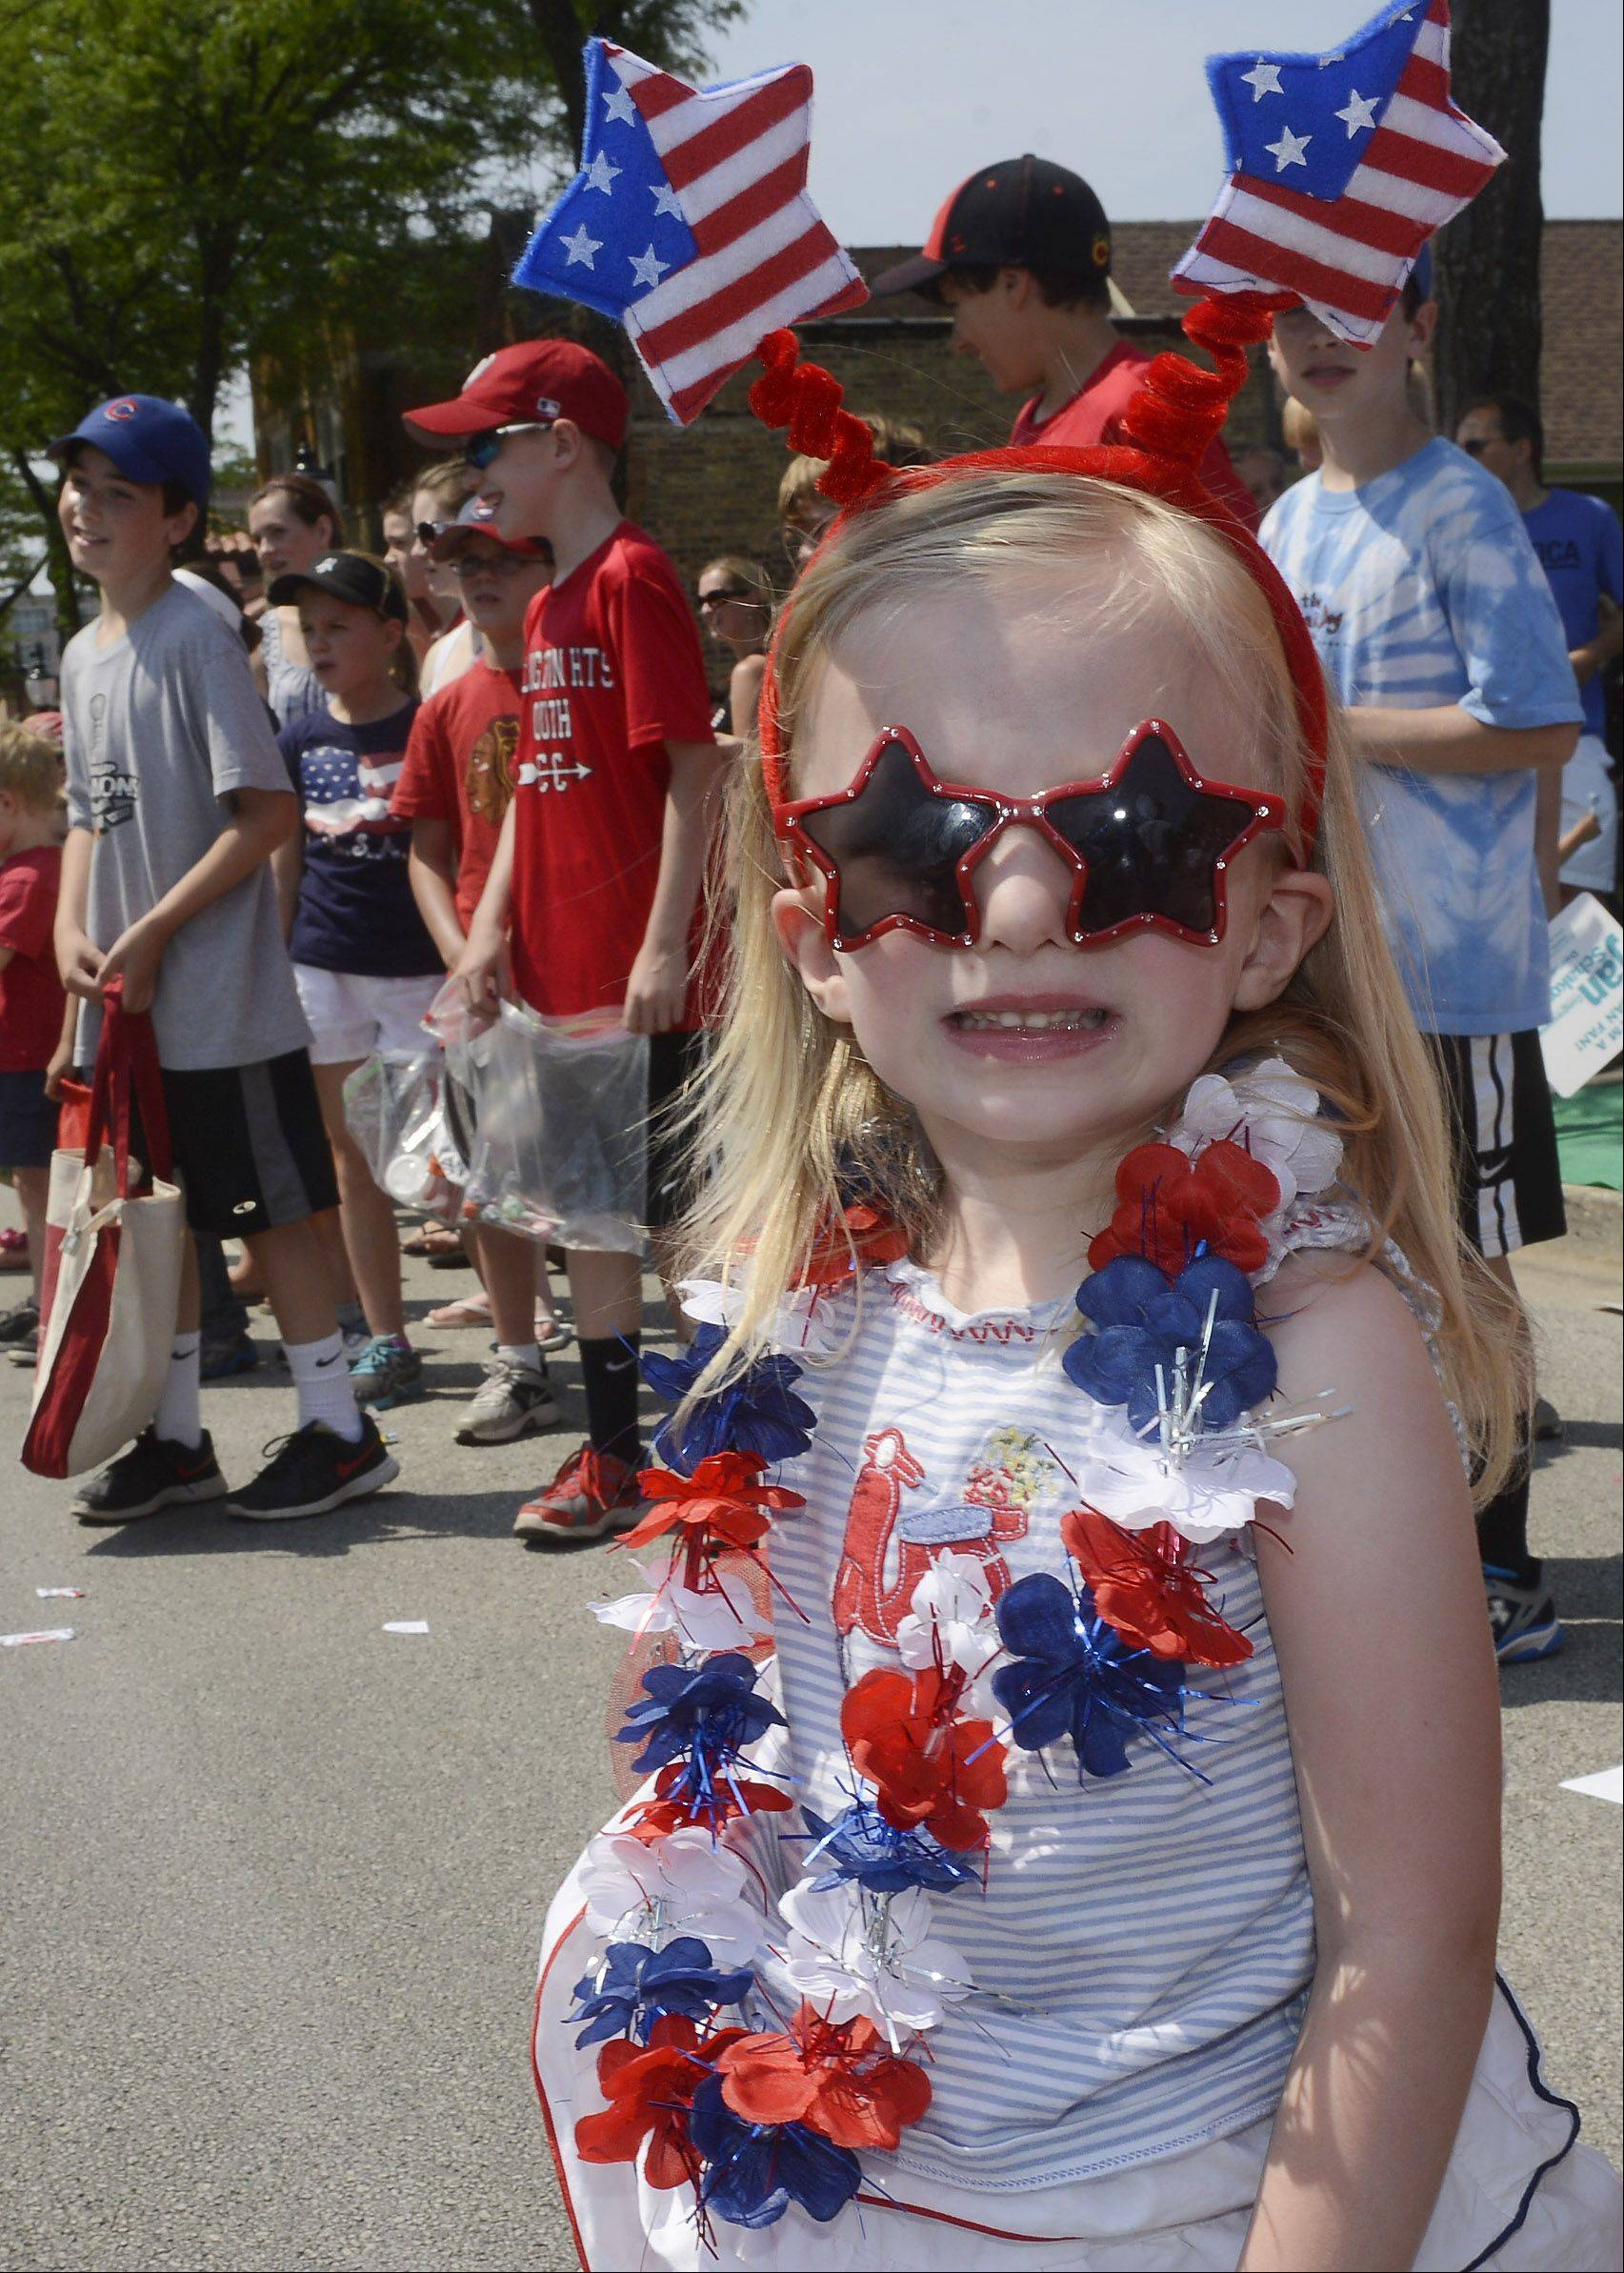 Emelia Weber, 4, of Arlington Heights waits for candy during the Arlington Heights Fourth of July parade Thursday.